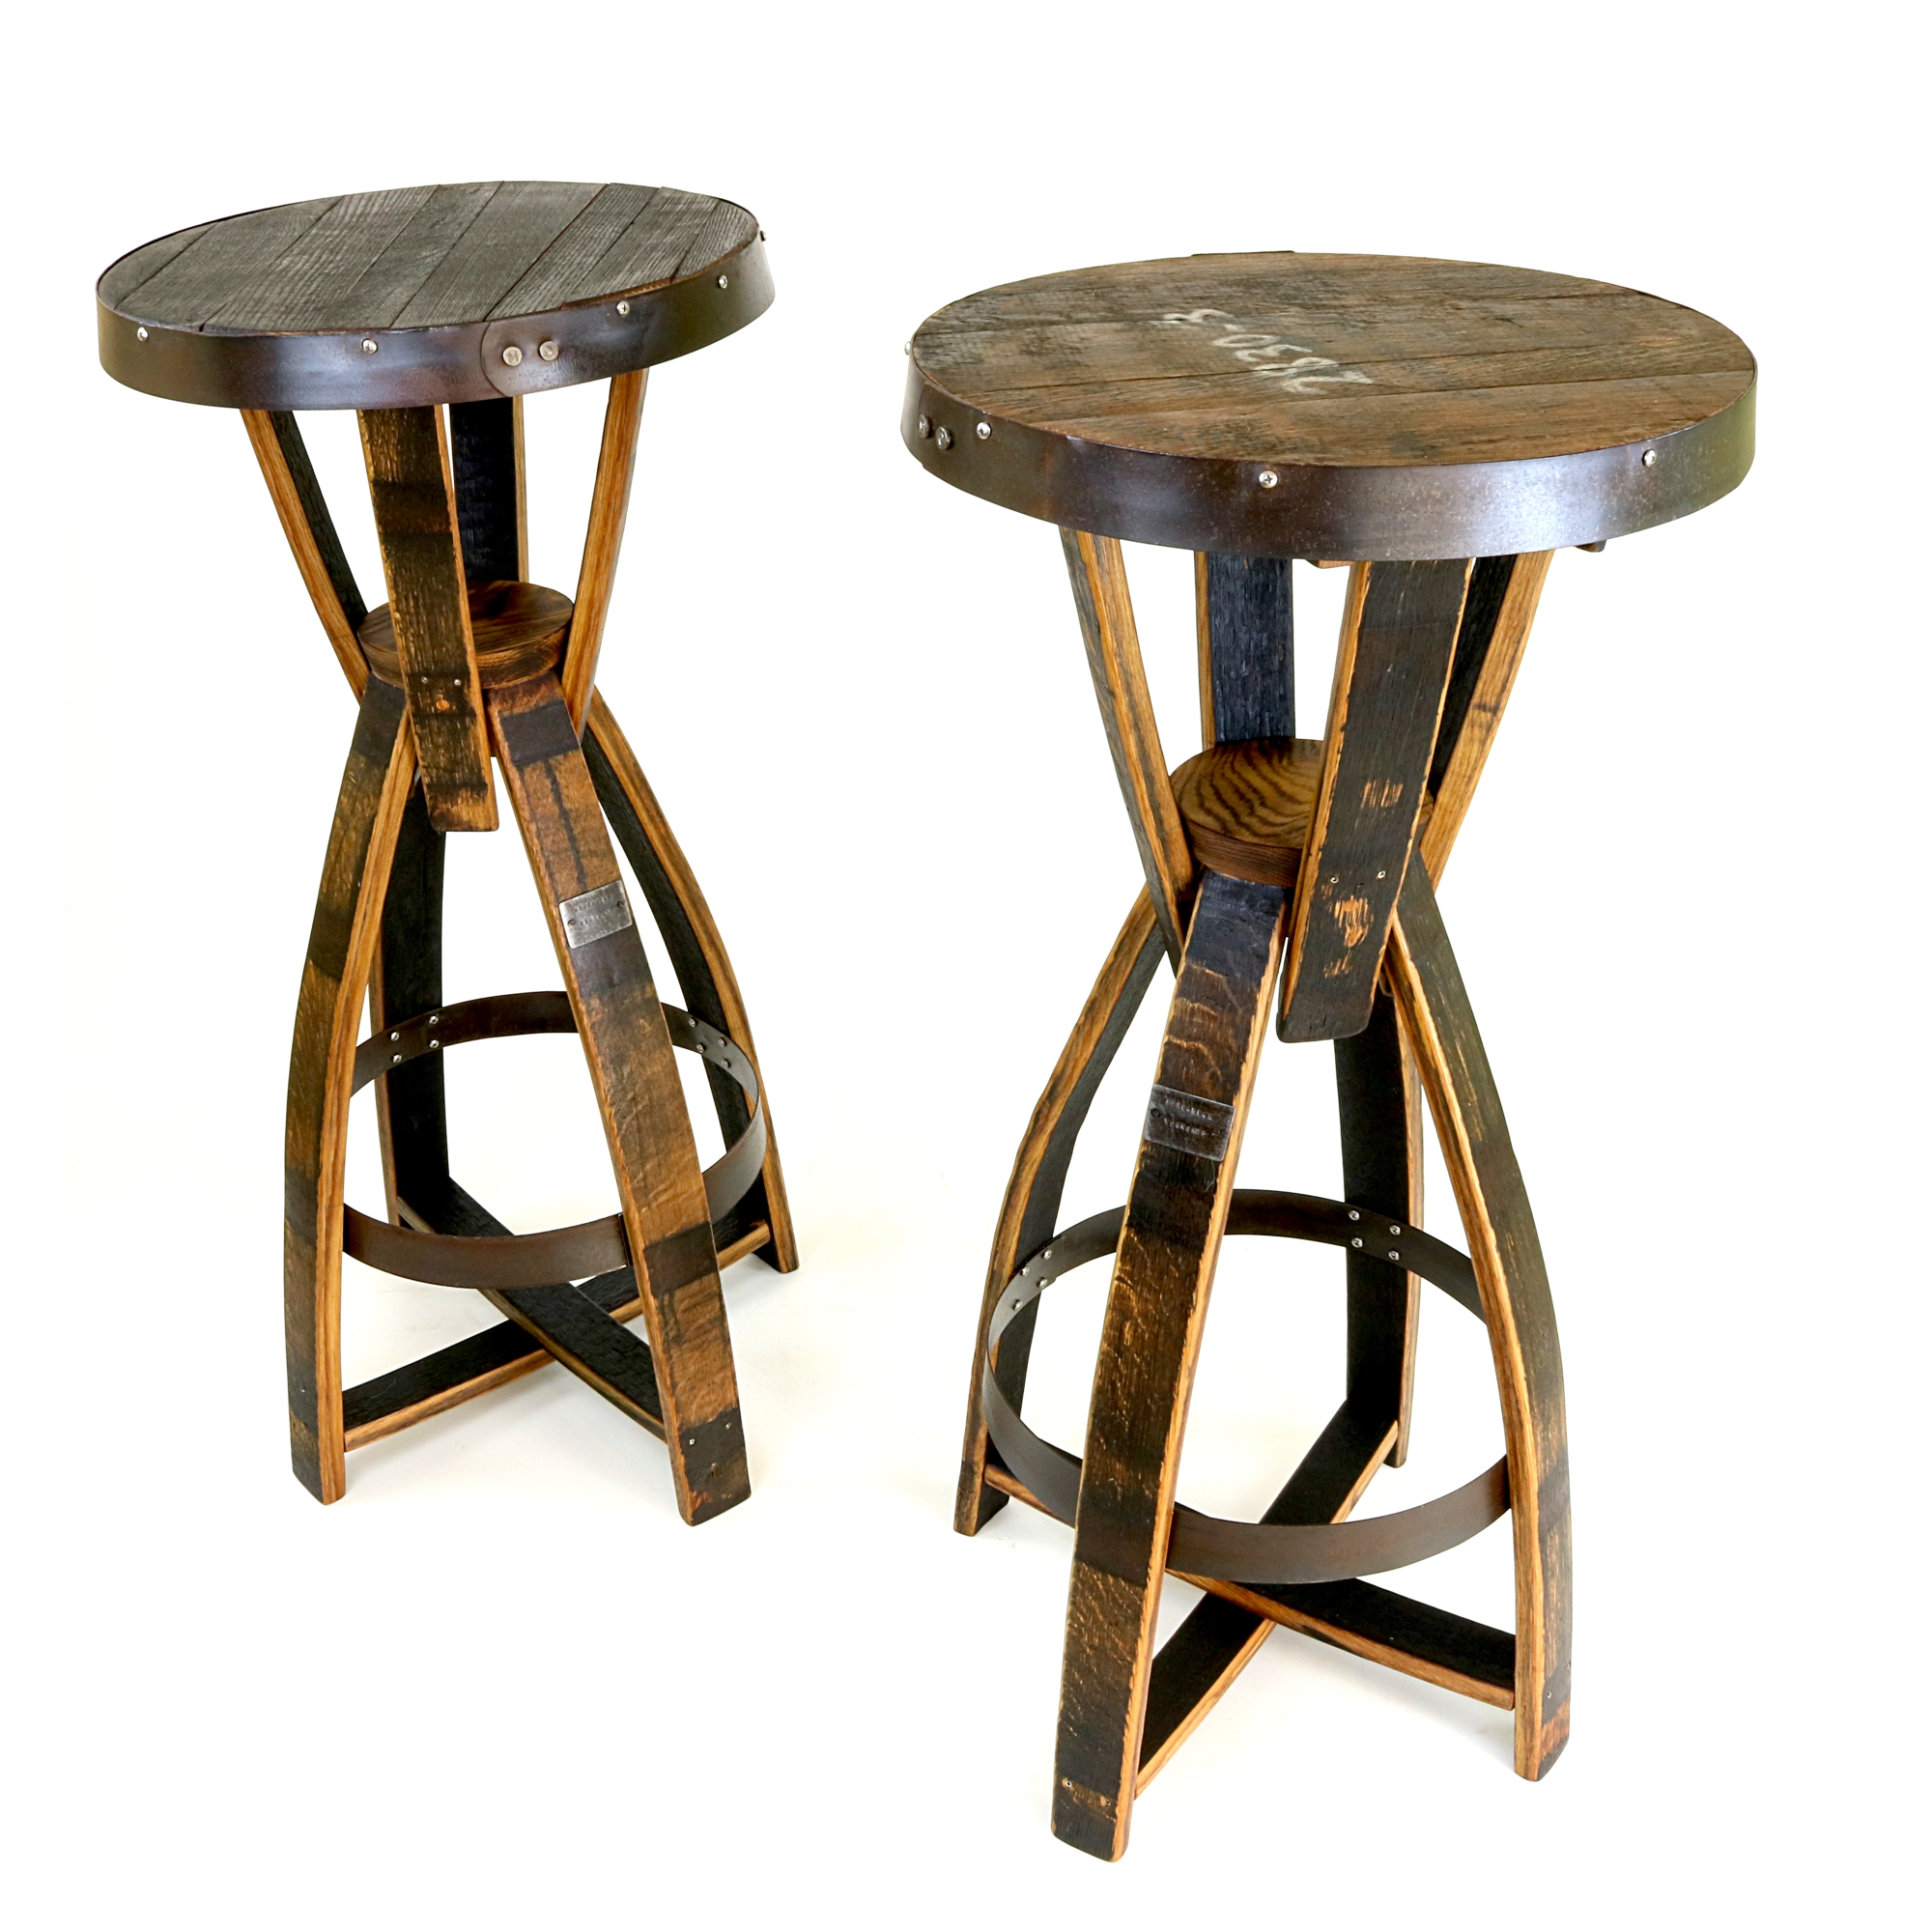 whiskey barrel pub table and chairs tall dining bourbon tables hungarian workshop buy today